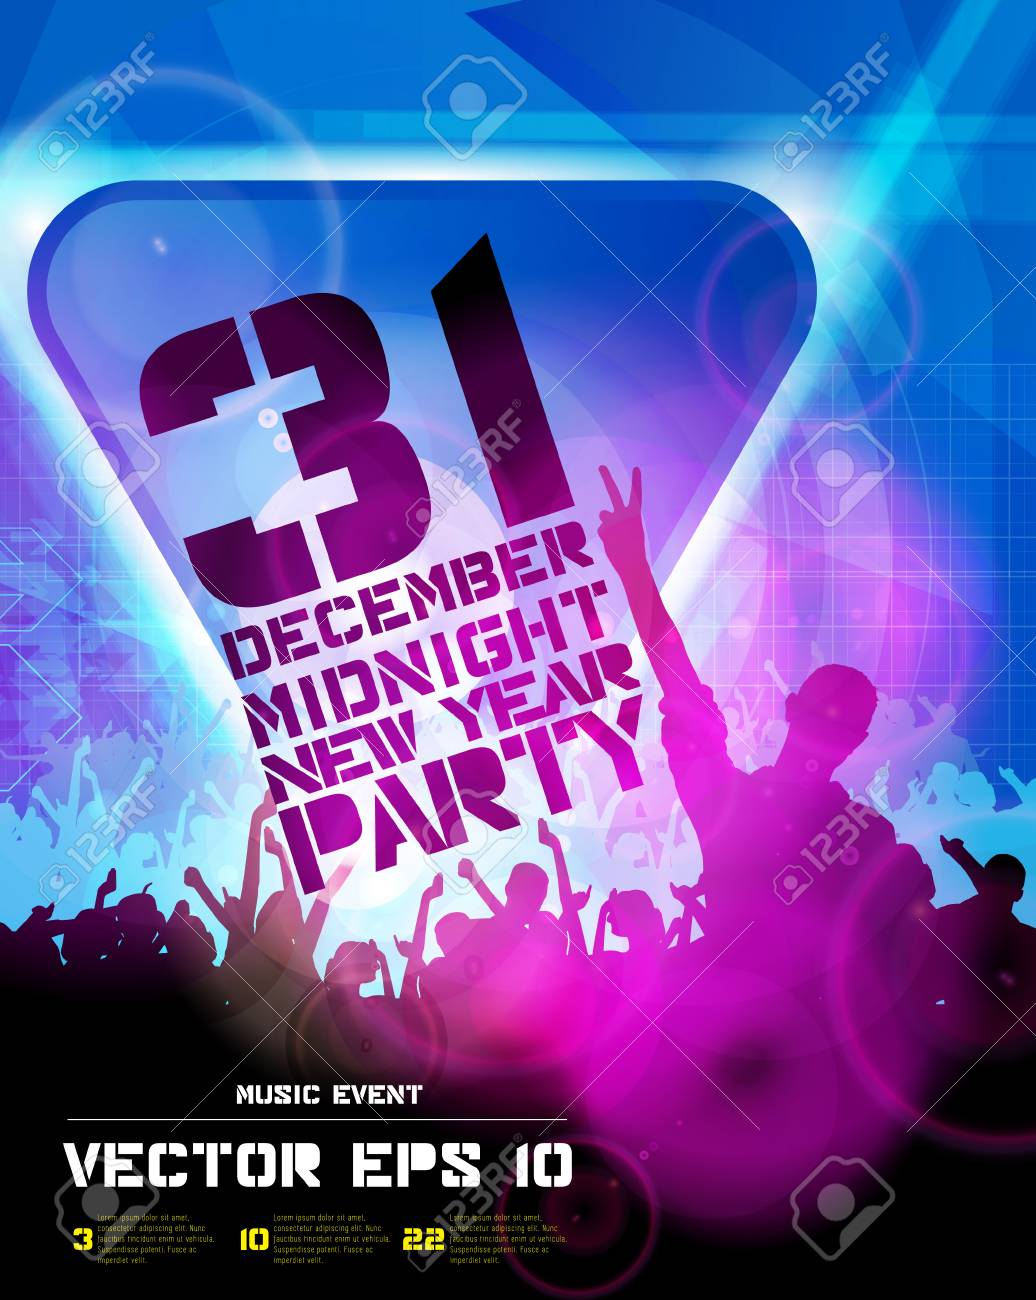 Music Event Illustration Background For New Year Party Poster